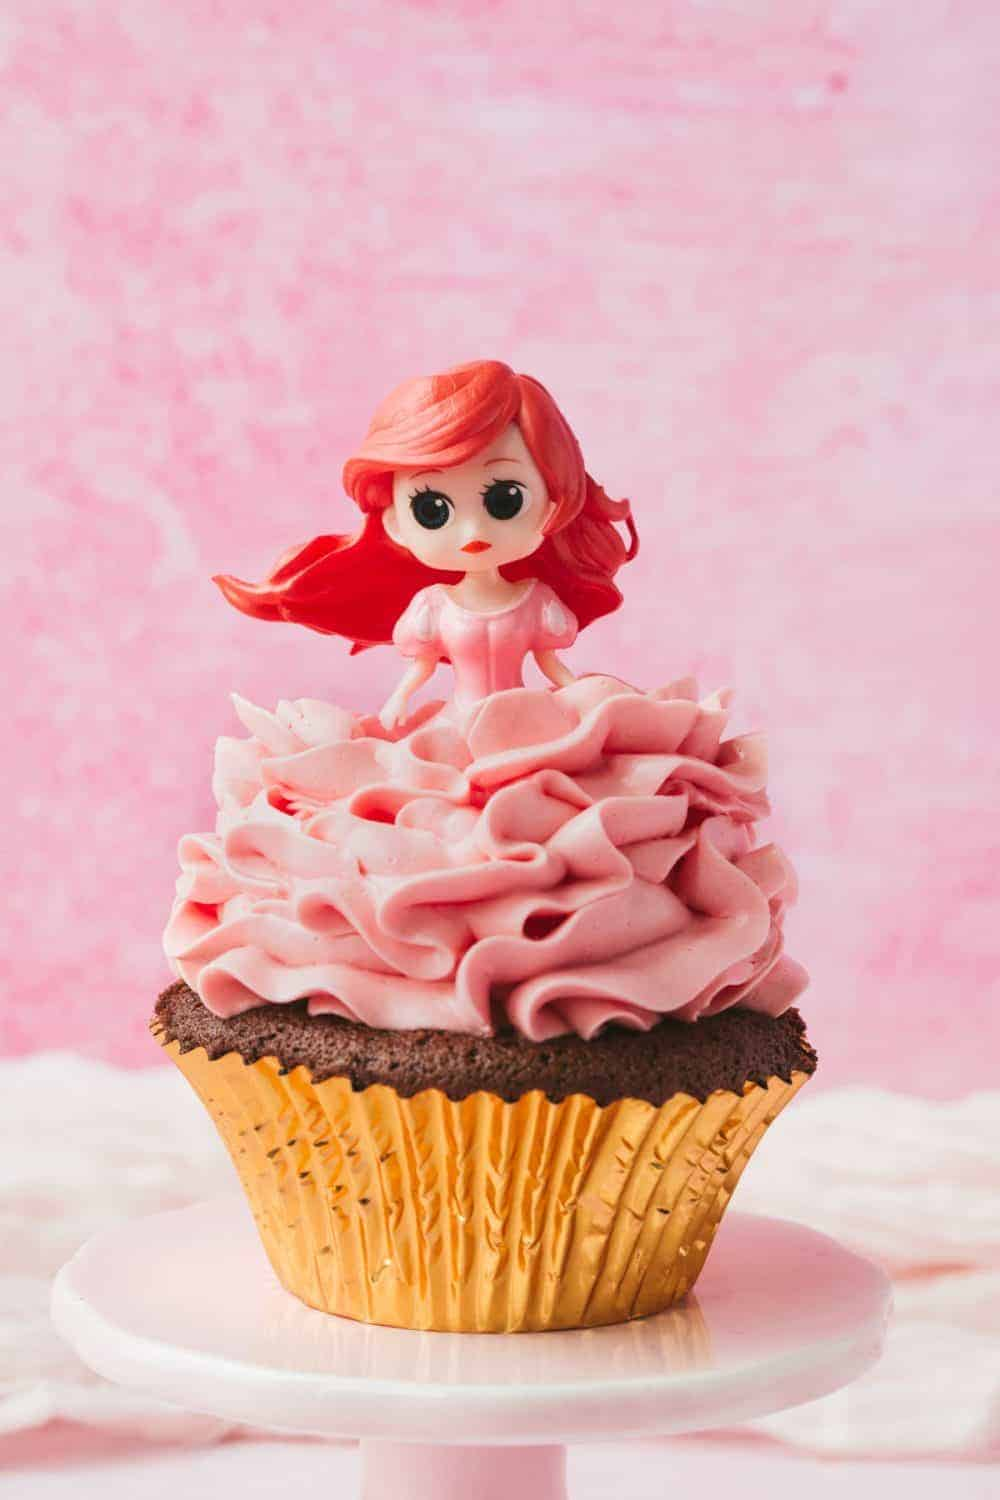 Disney princess Ariel on top of a chocolate cupcake covered in pink swiss meringue buttercream.